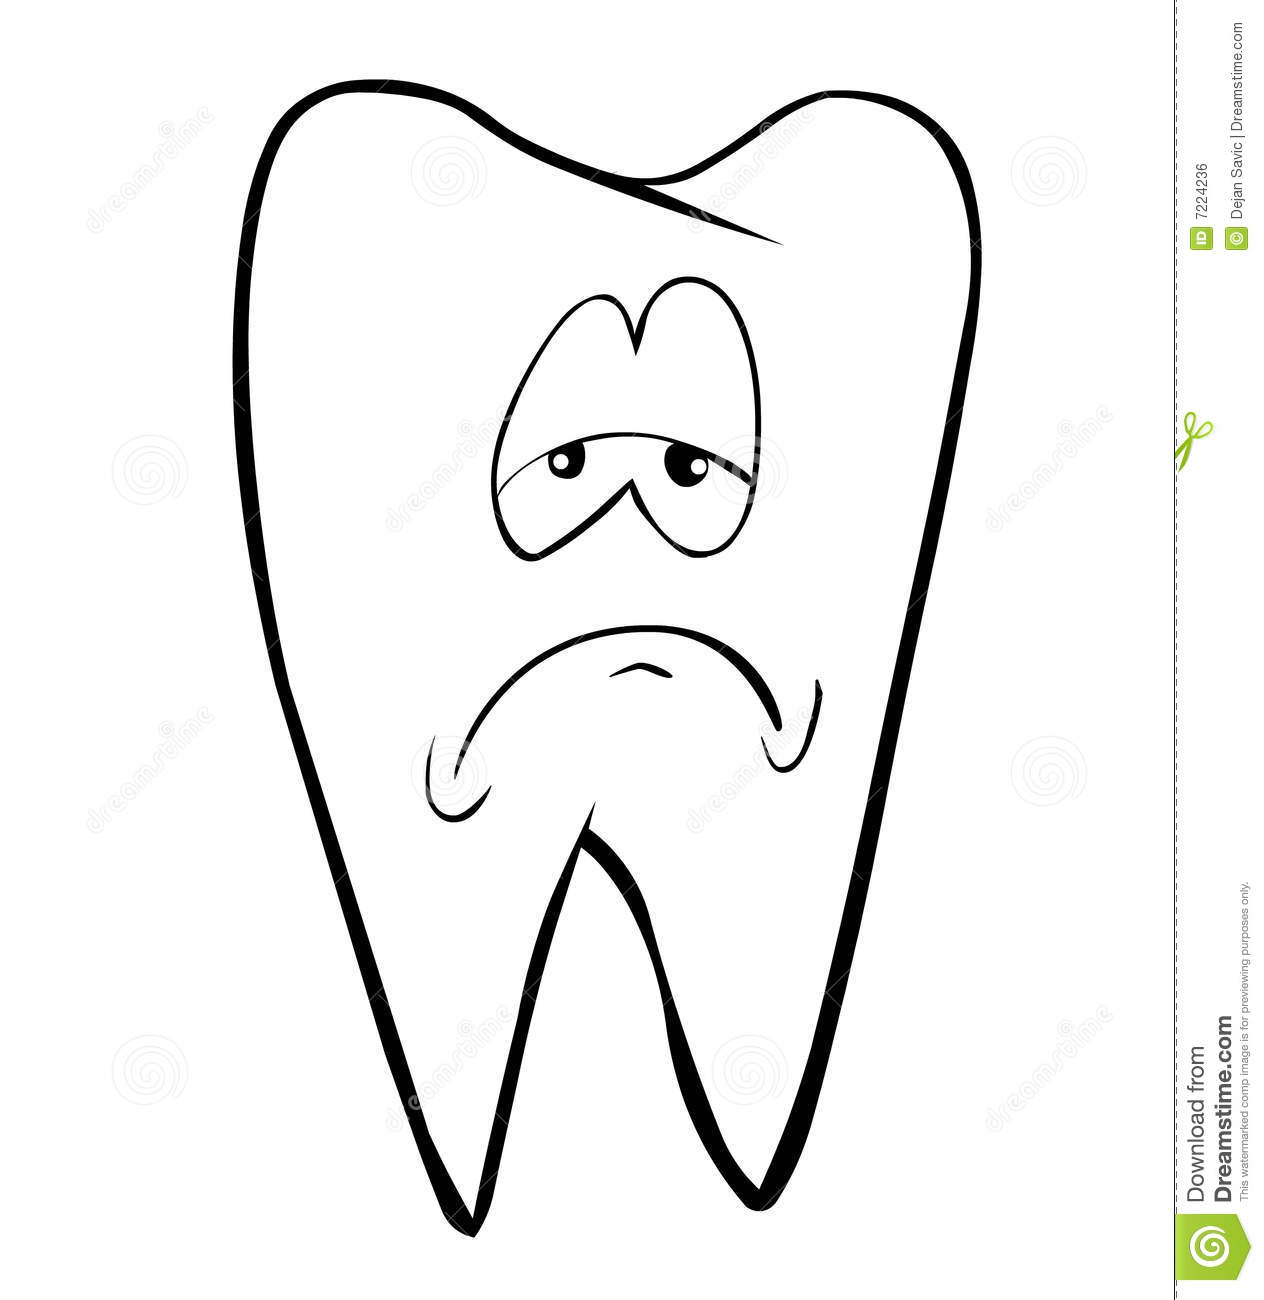 tooth royalty free stock image image 7224236